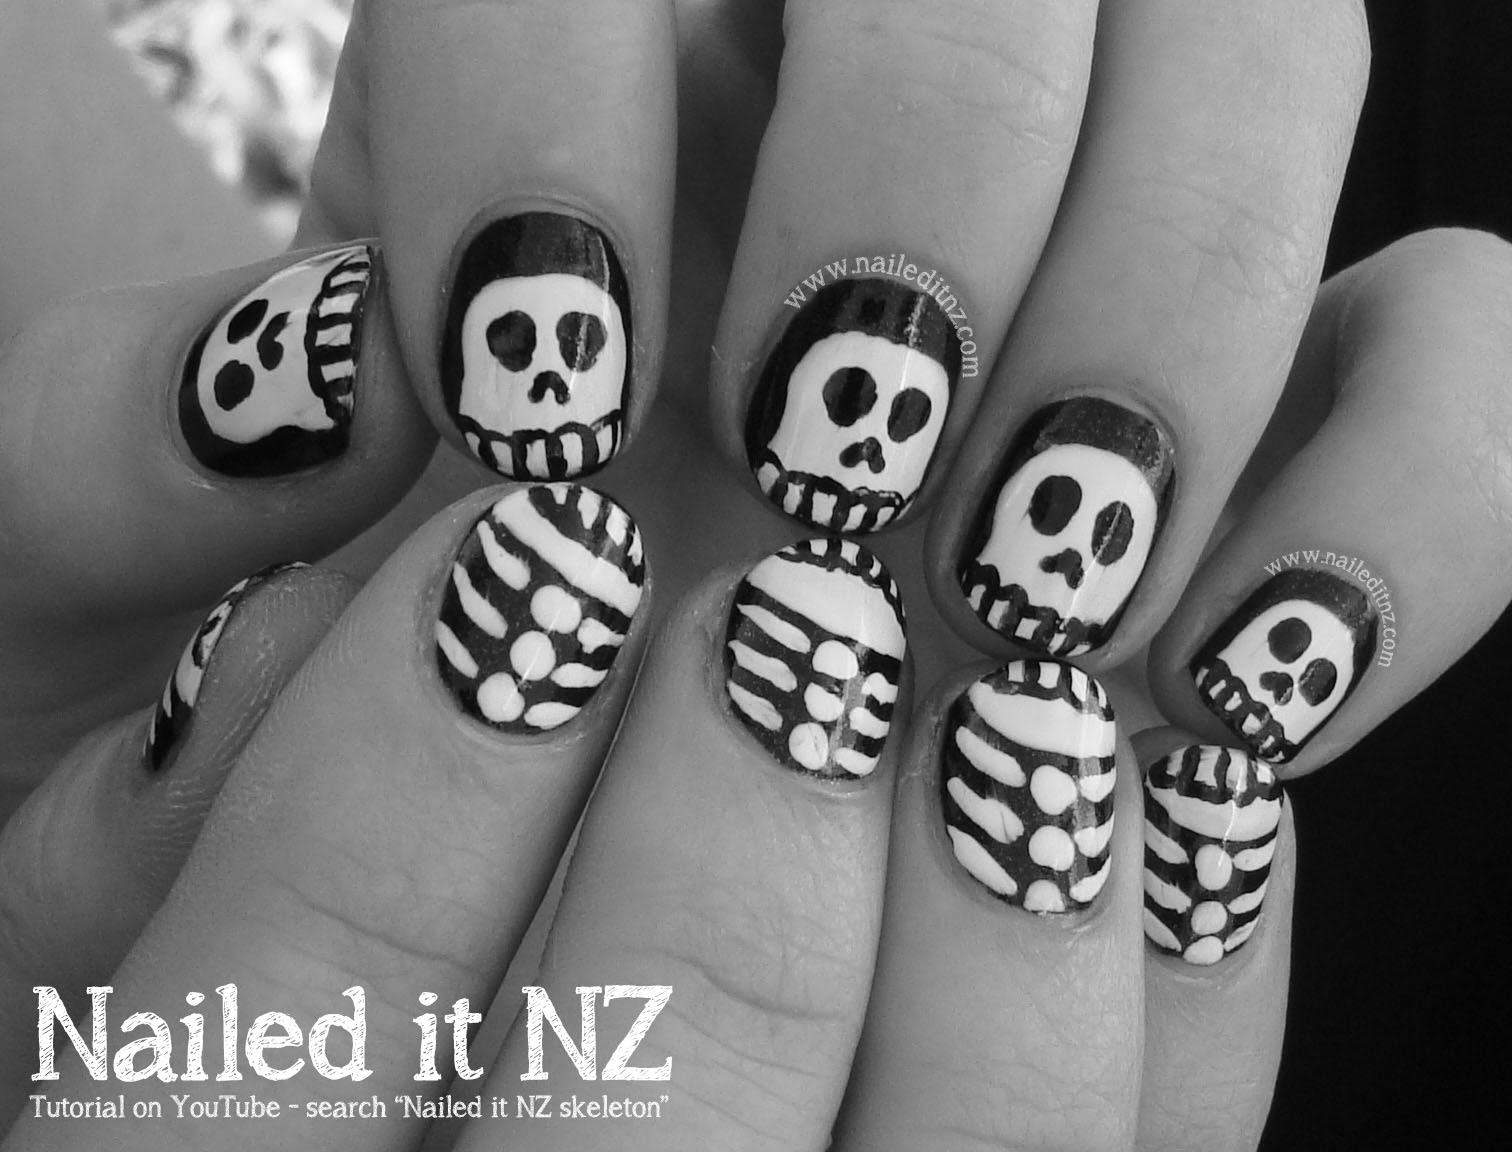 Nailed It NZ - Halloween Skeletons - Nail Art Tutorial